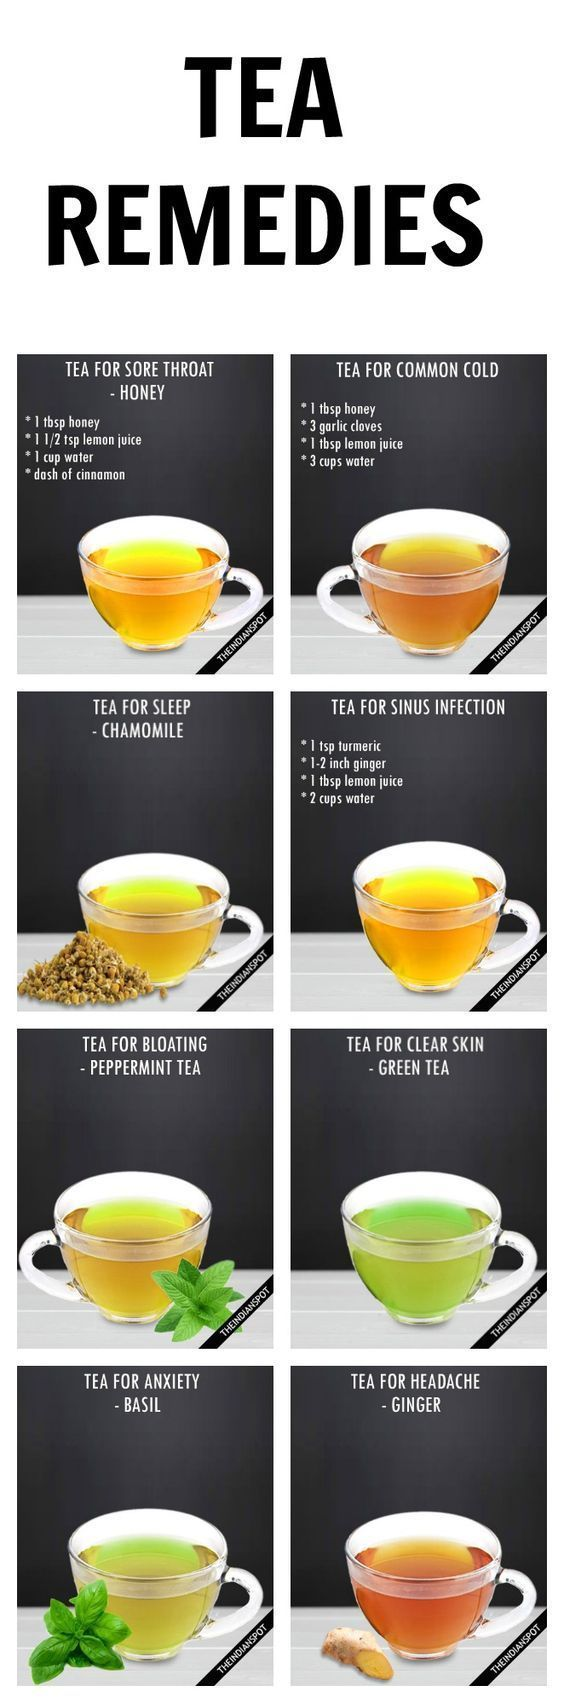 28 Best Herbal Remedies For Menopause Images On Pinterest Ever E Isi 30 Softgels Way Of Consuming Herbs Besides The Dissolved Essential Nutrients Get Easily Absorbed By Body There Are Number Teas Almost Gayle